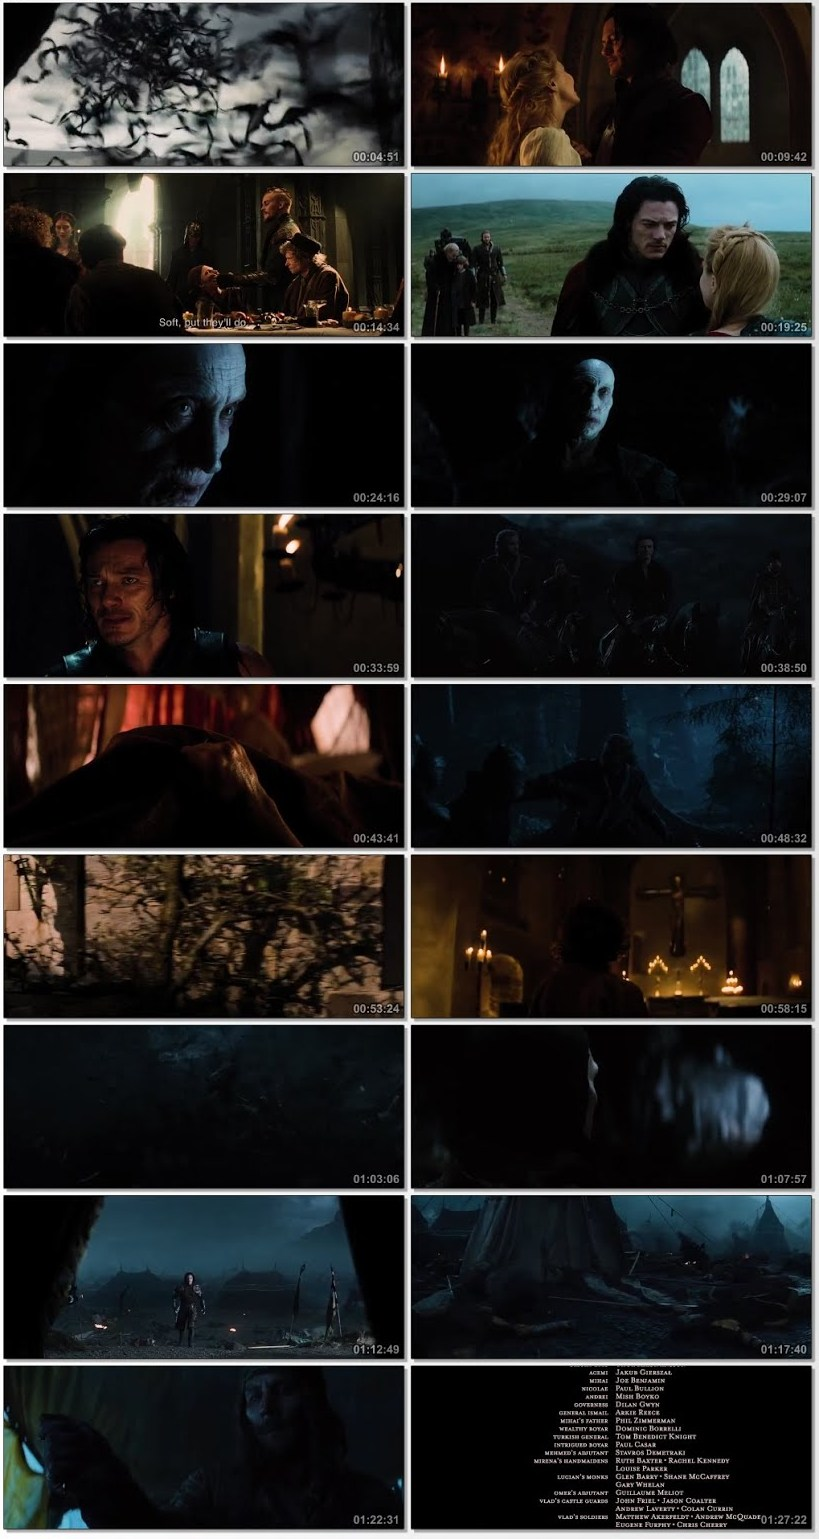 dracula untold movie download 300mb, dracula untold movie download hindi 480p, dracula untold movie download hindi 720p